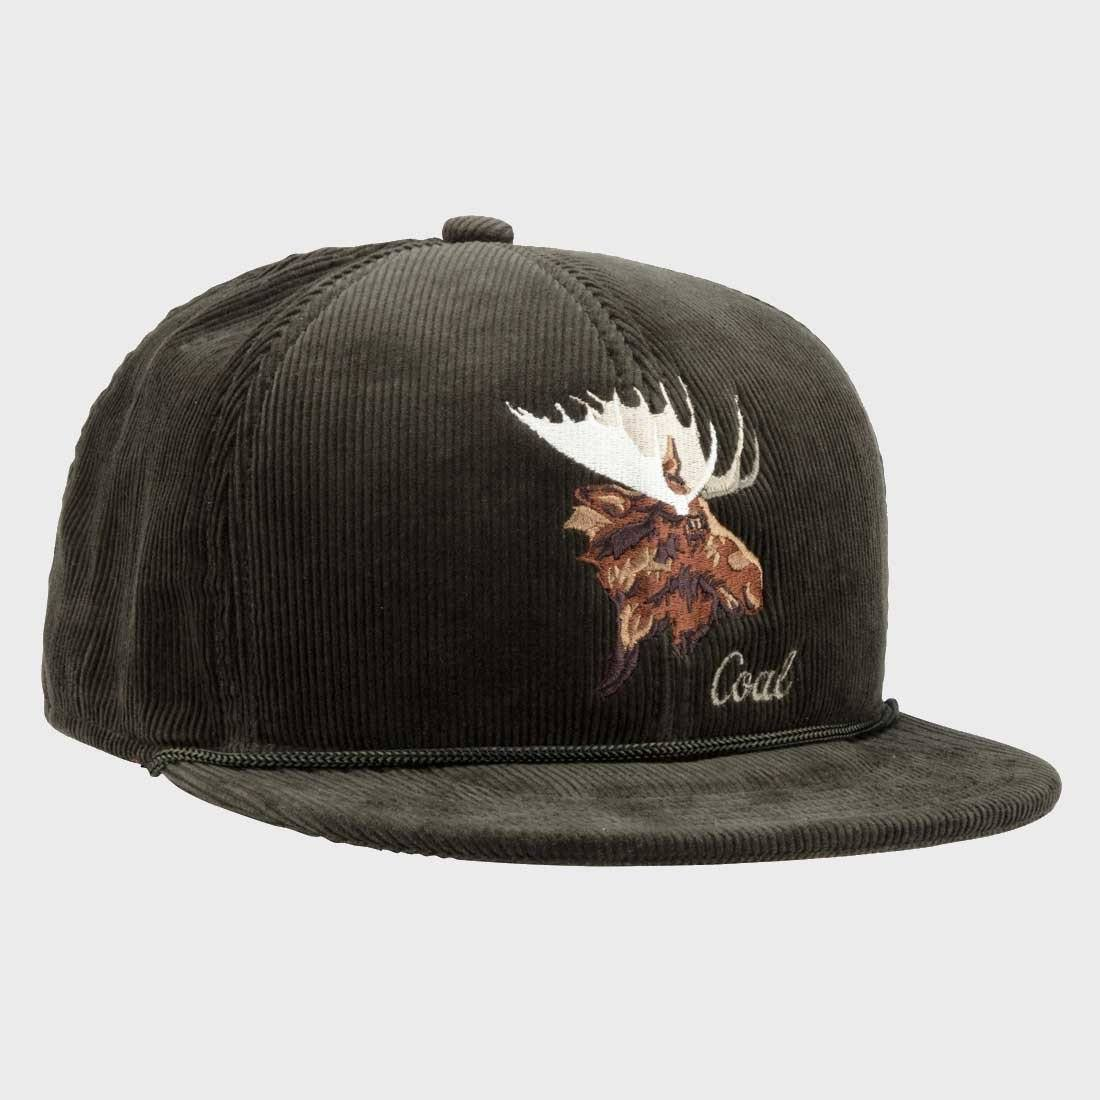 Coal The Wilderness Hat Forest Green (Moose)